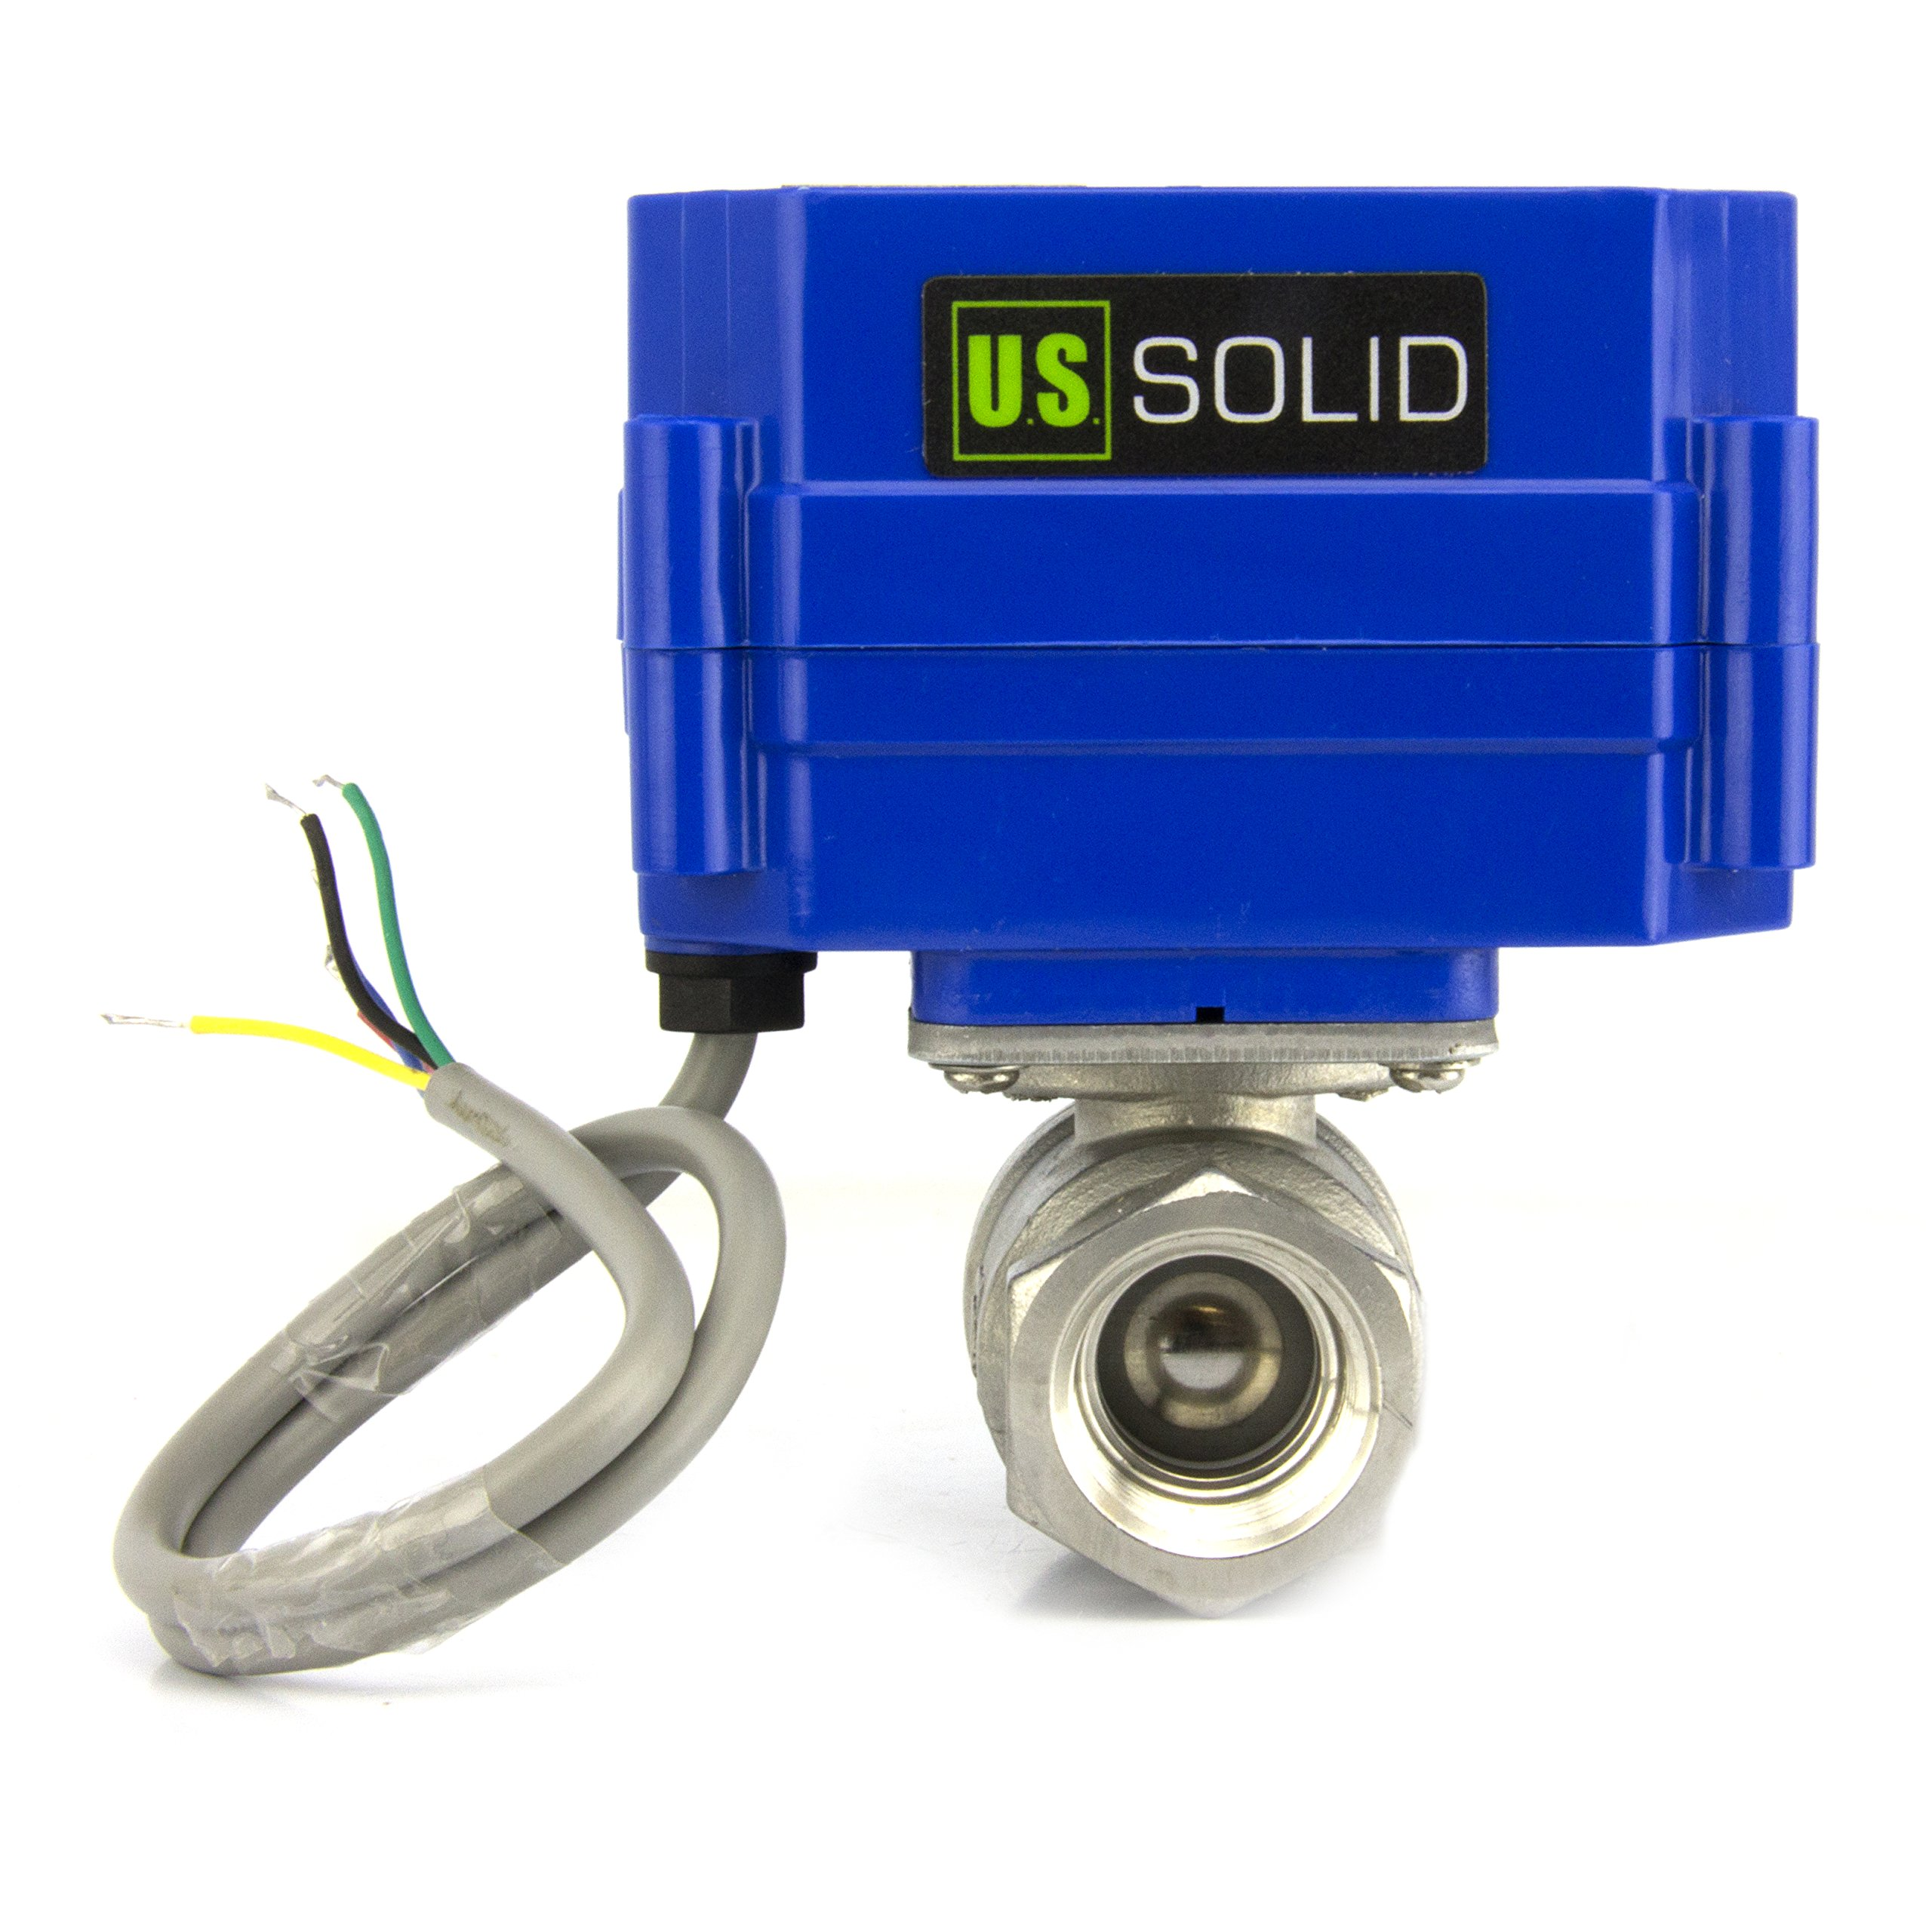 Motorized Ball Valve- 1/4'' Stainless Steel Electrical Ball Valve with Standard Port, 9-24V DC and 5 Wire Setup, can be used with Indicator Lights, [Indicate Open or Closed Position] by U.S. Solid